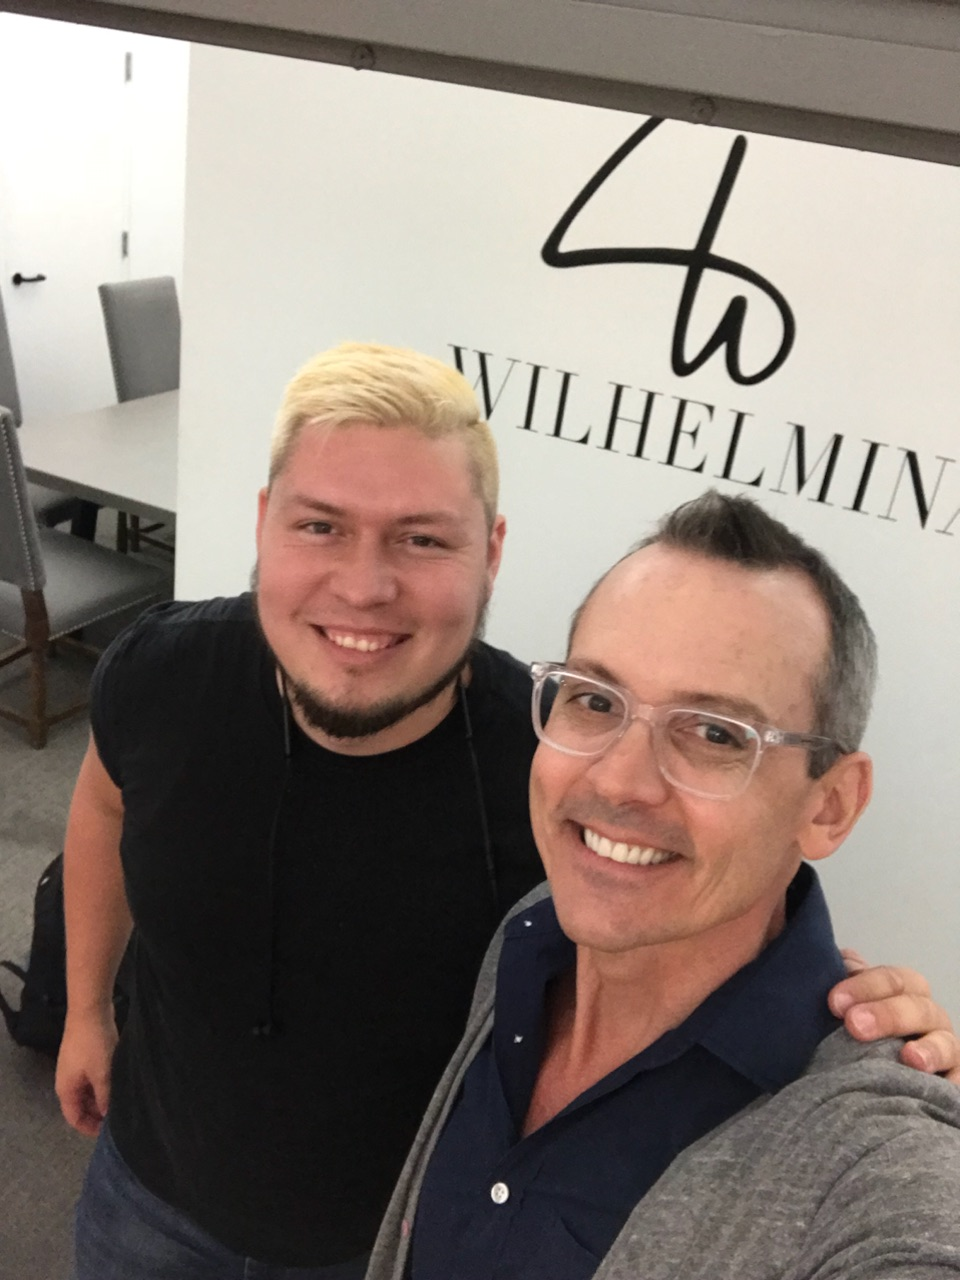 Here with my agent Jay at Wilhelmina.